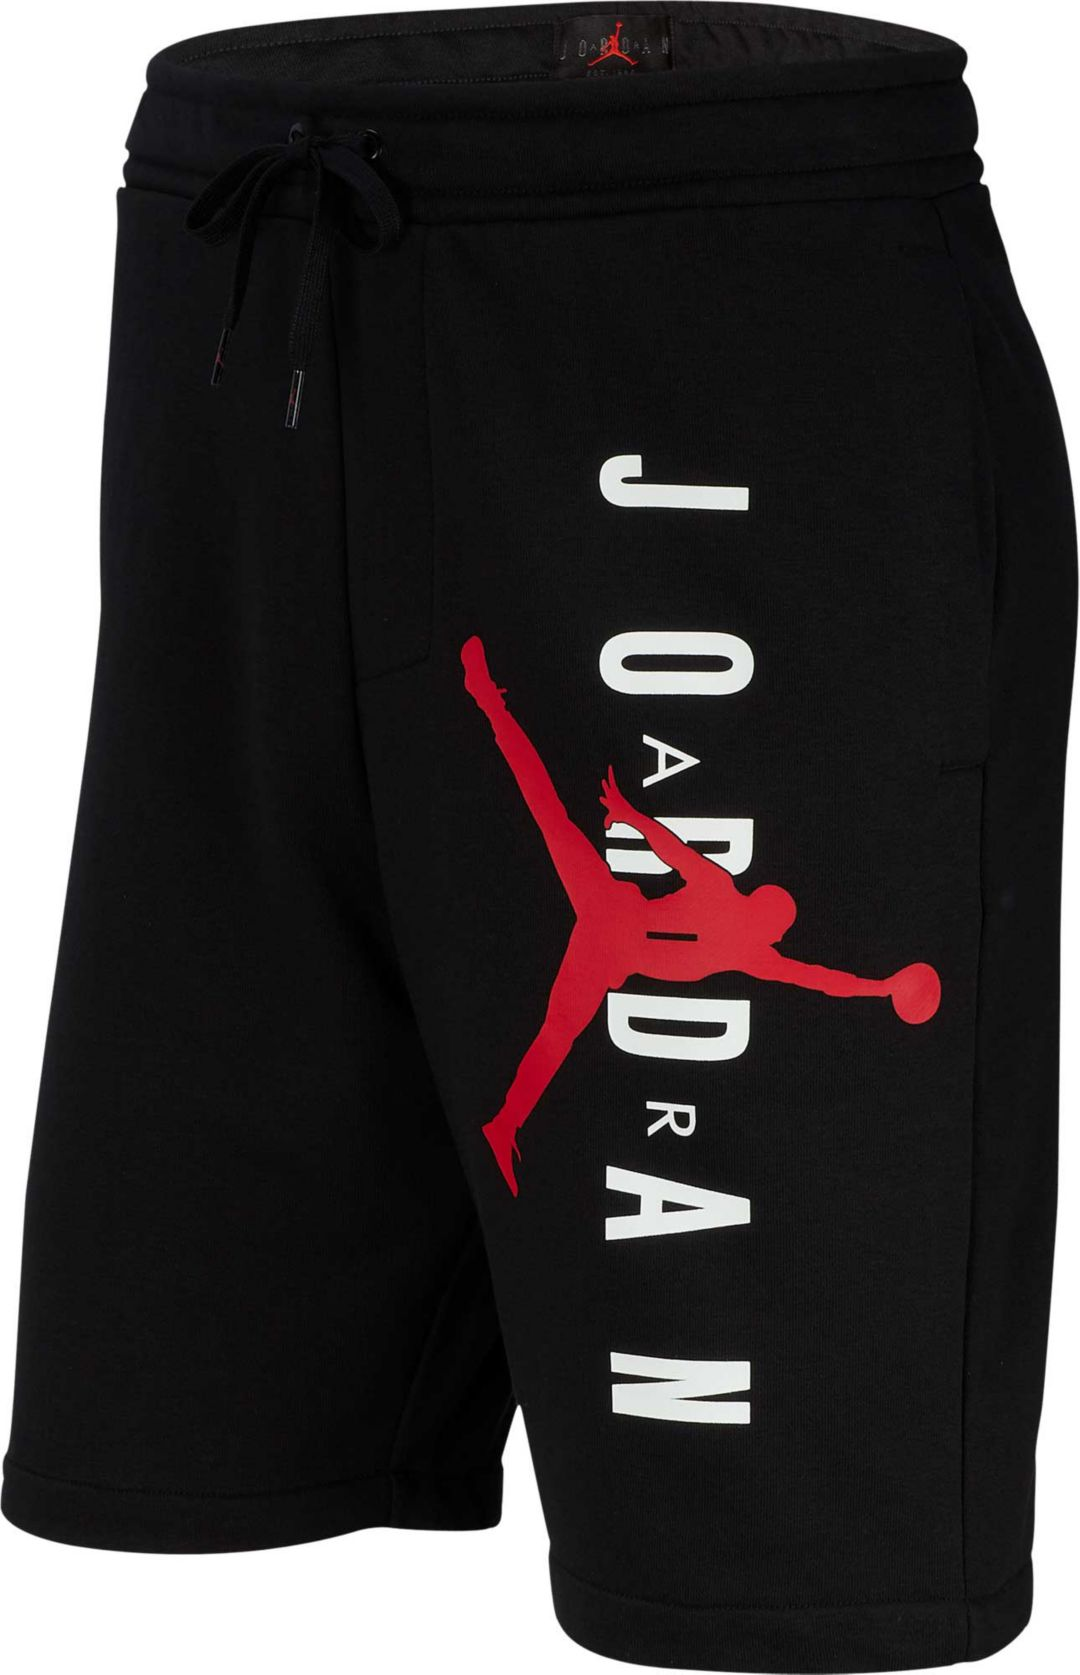 00a004a3cd4 Jordan Men's Jumpman Air Fleece Shorts | DICK'S Sporting Goods